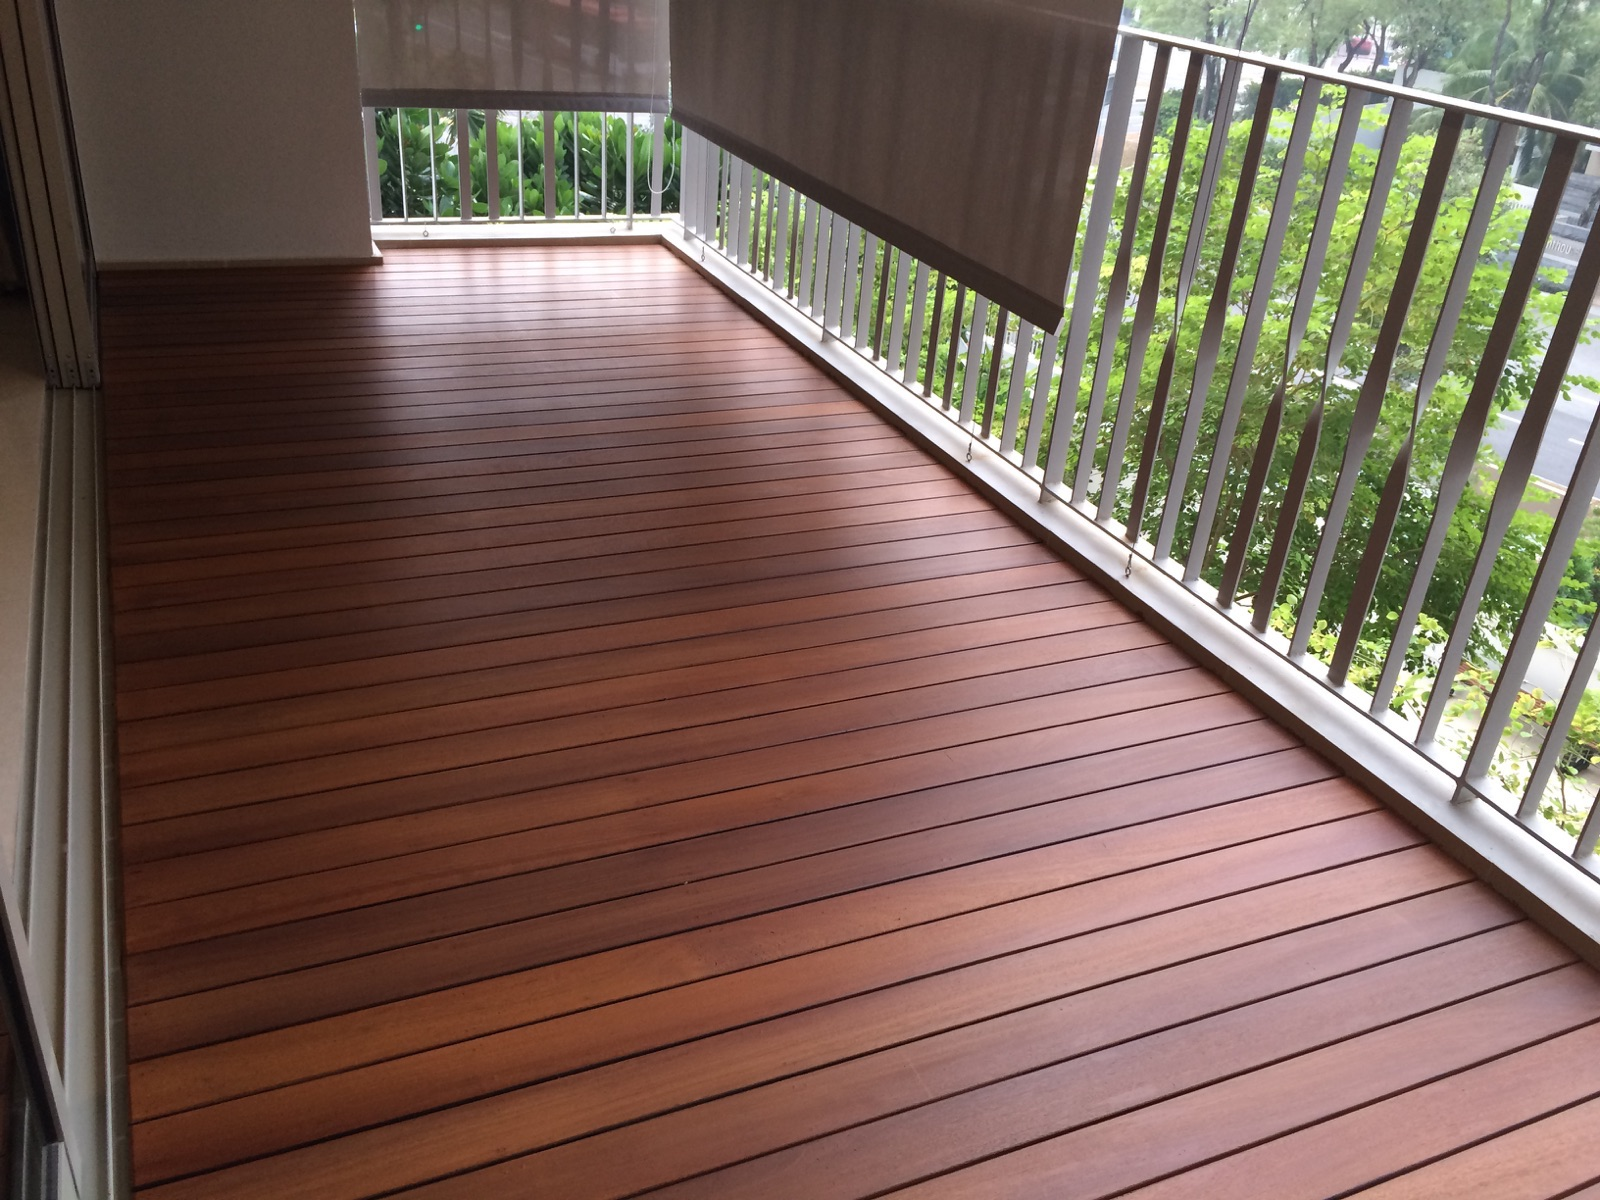 Balcony decking in singapore the floor gallery for Garden decking squares